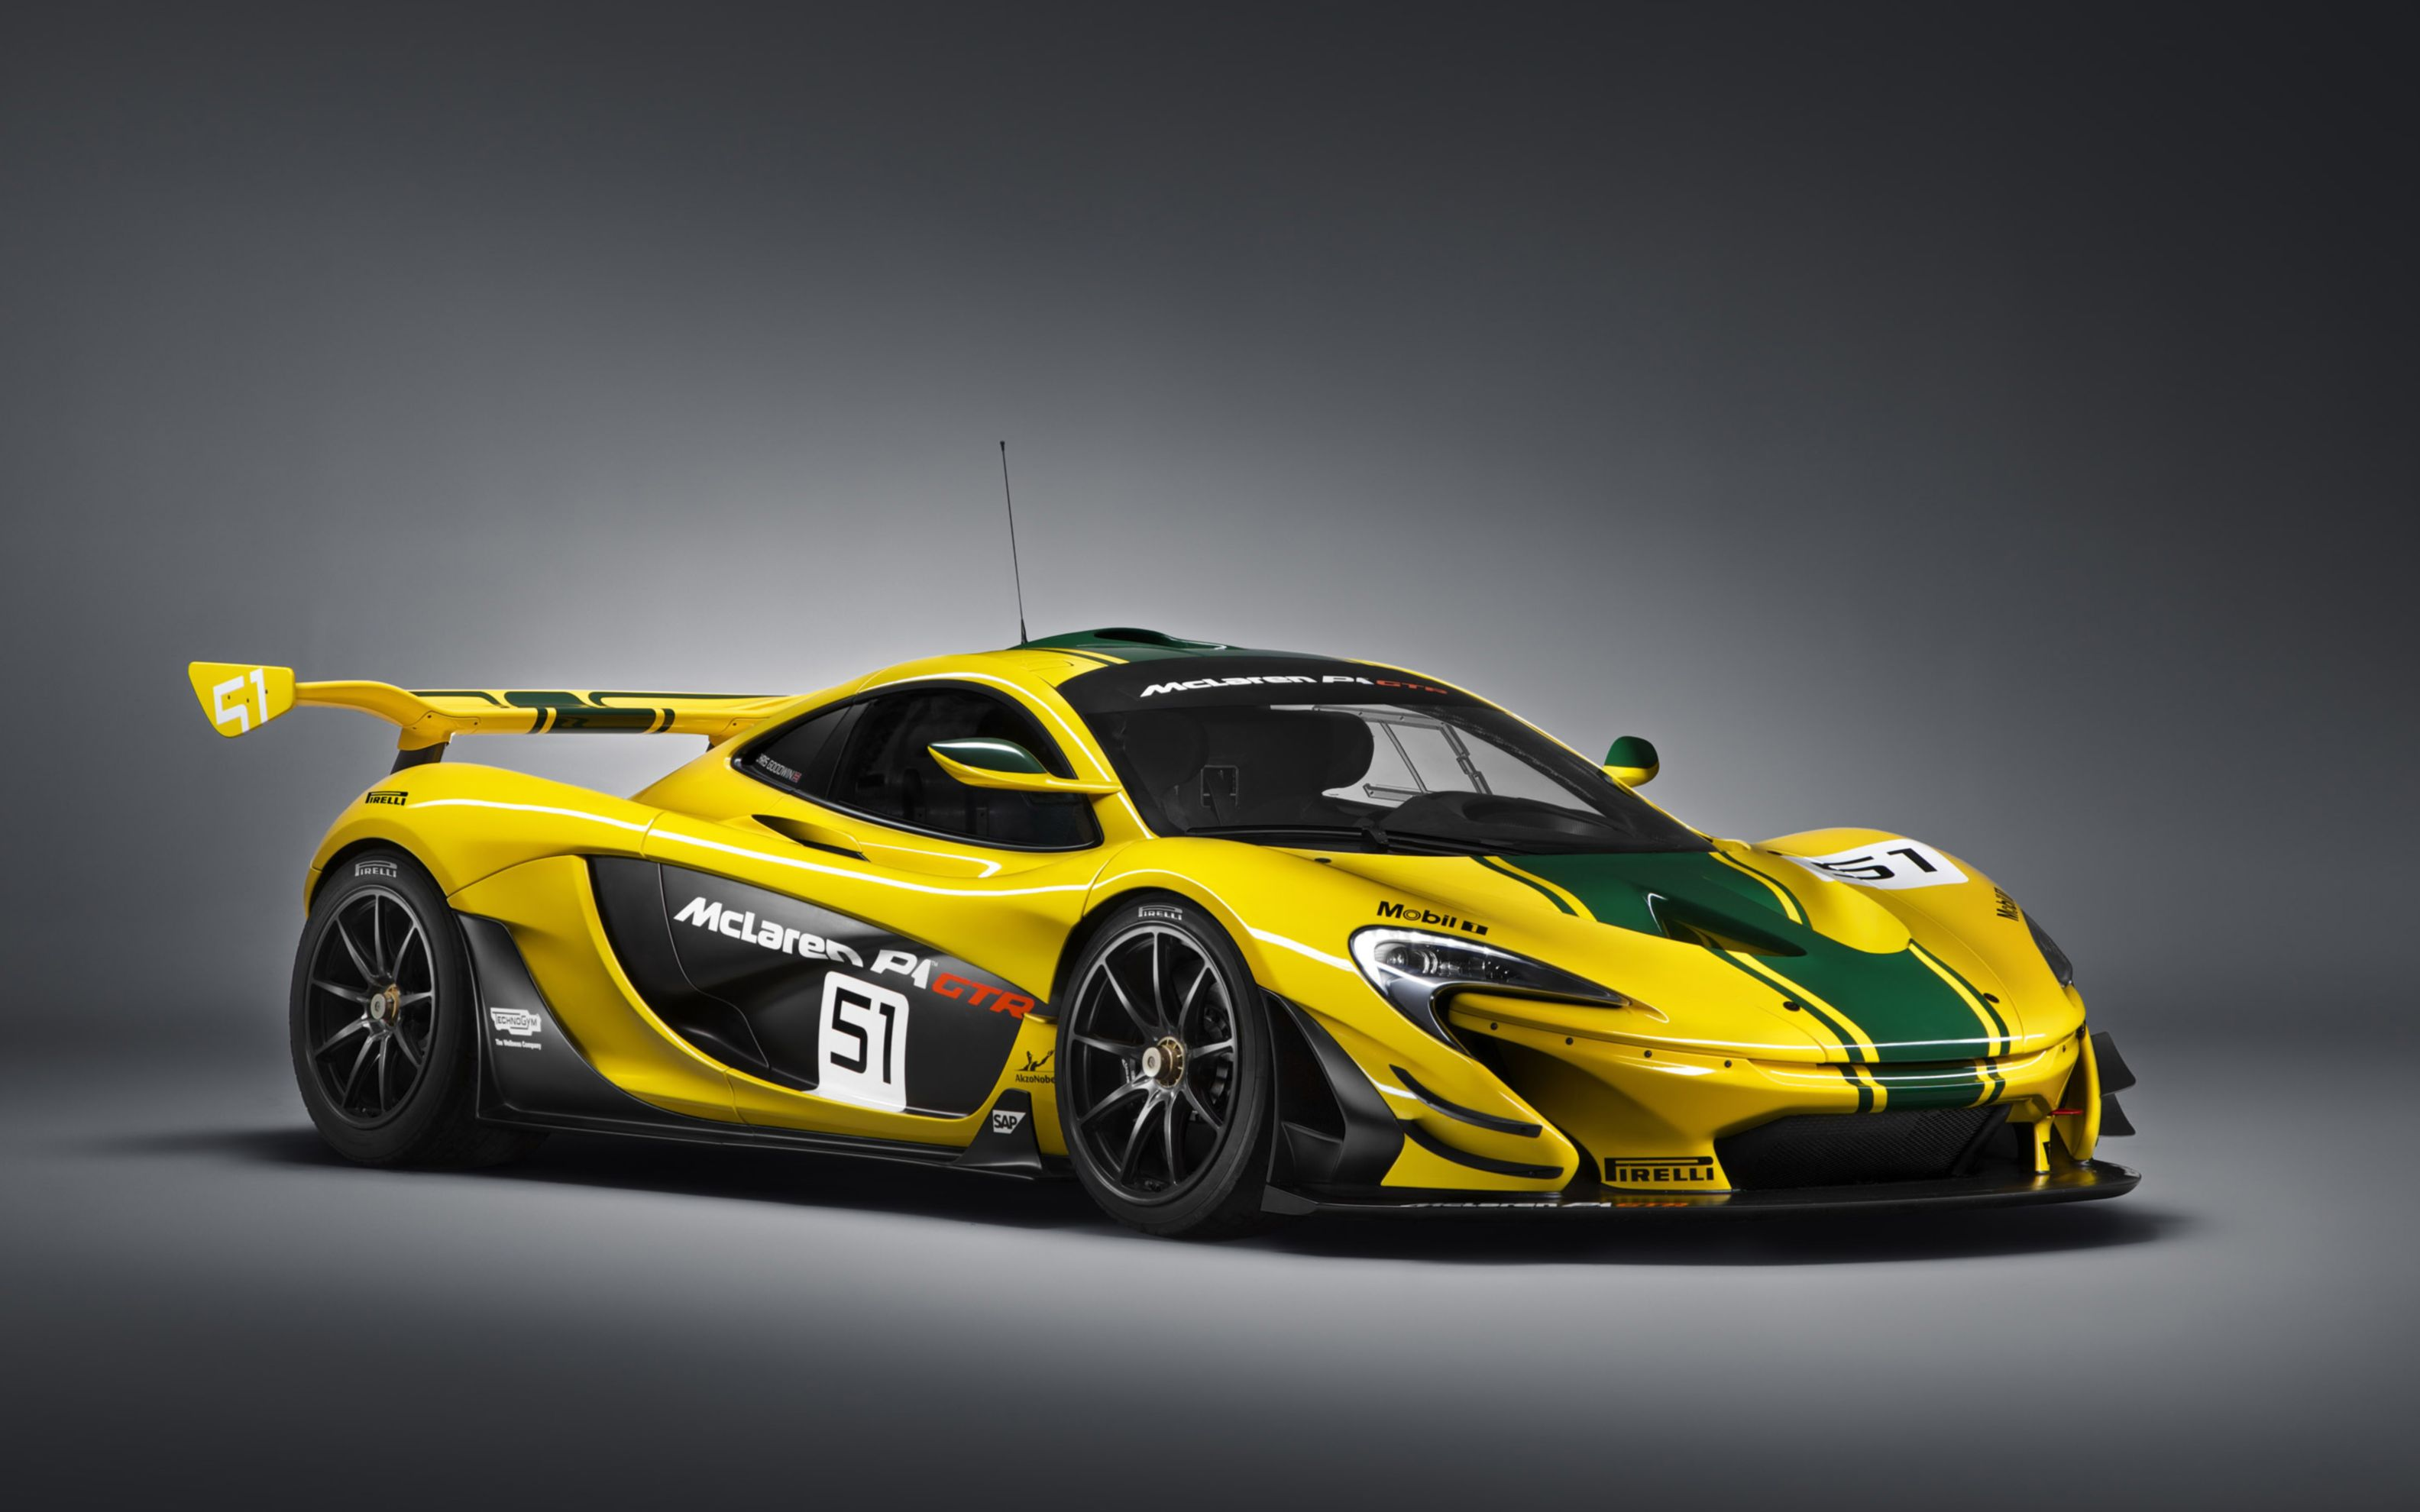 Download free HD 2015 Mclaren P1 Gtr Limited Edition Wide Wallpaper, image